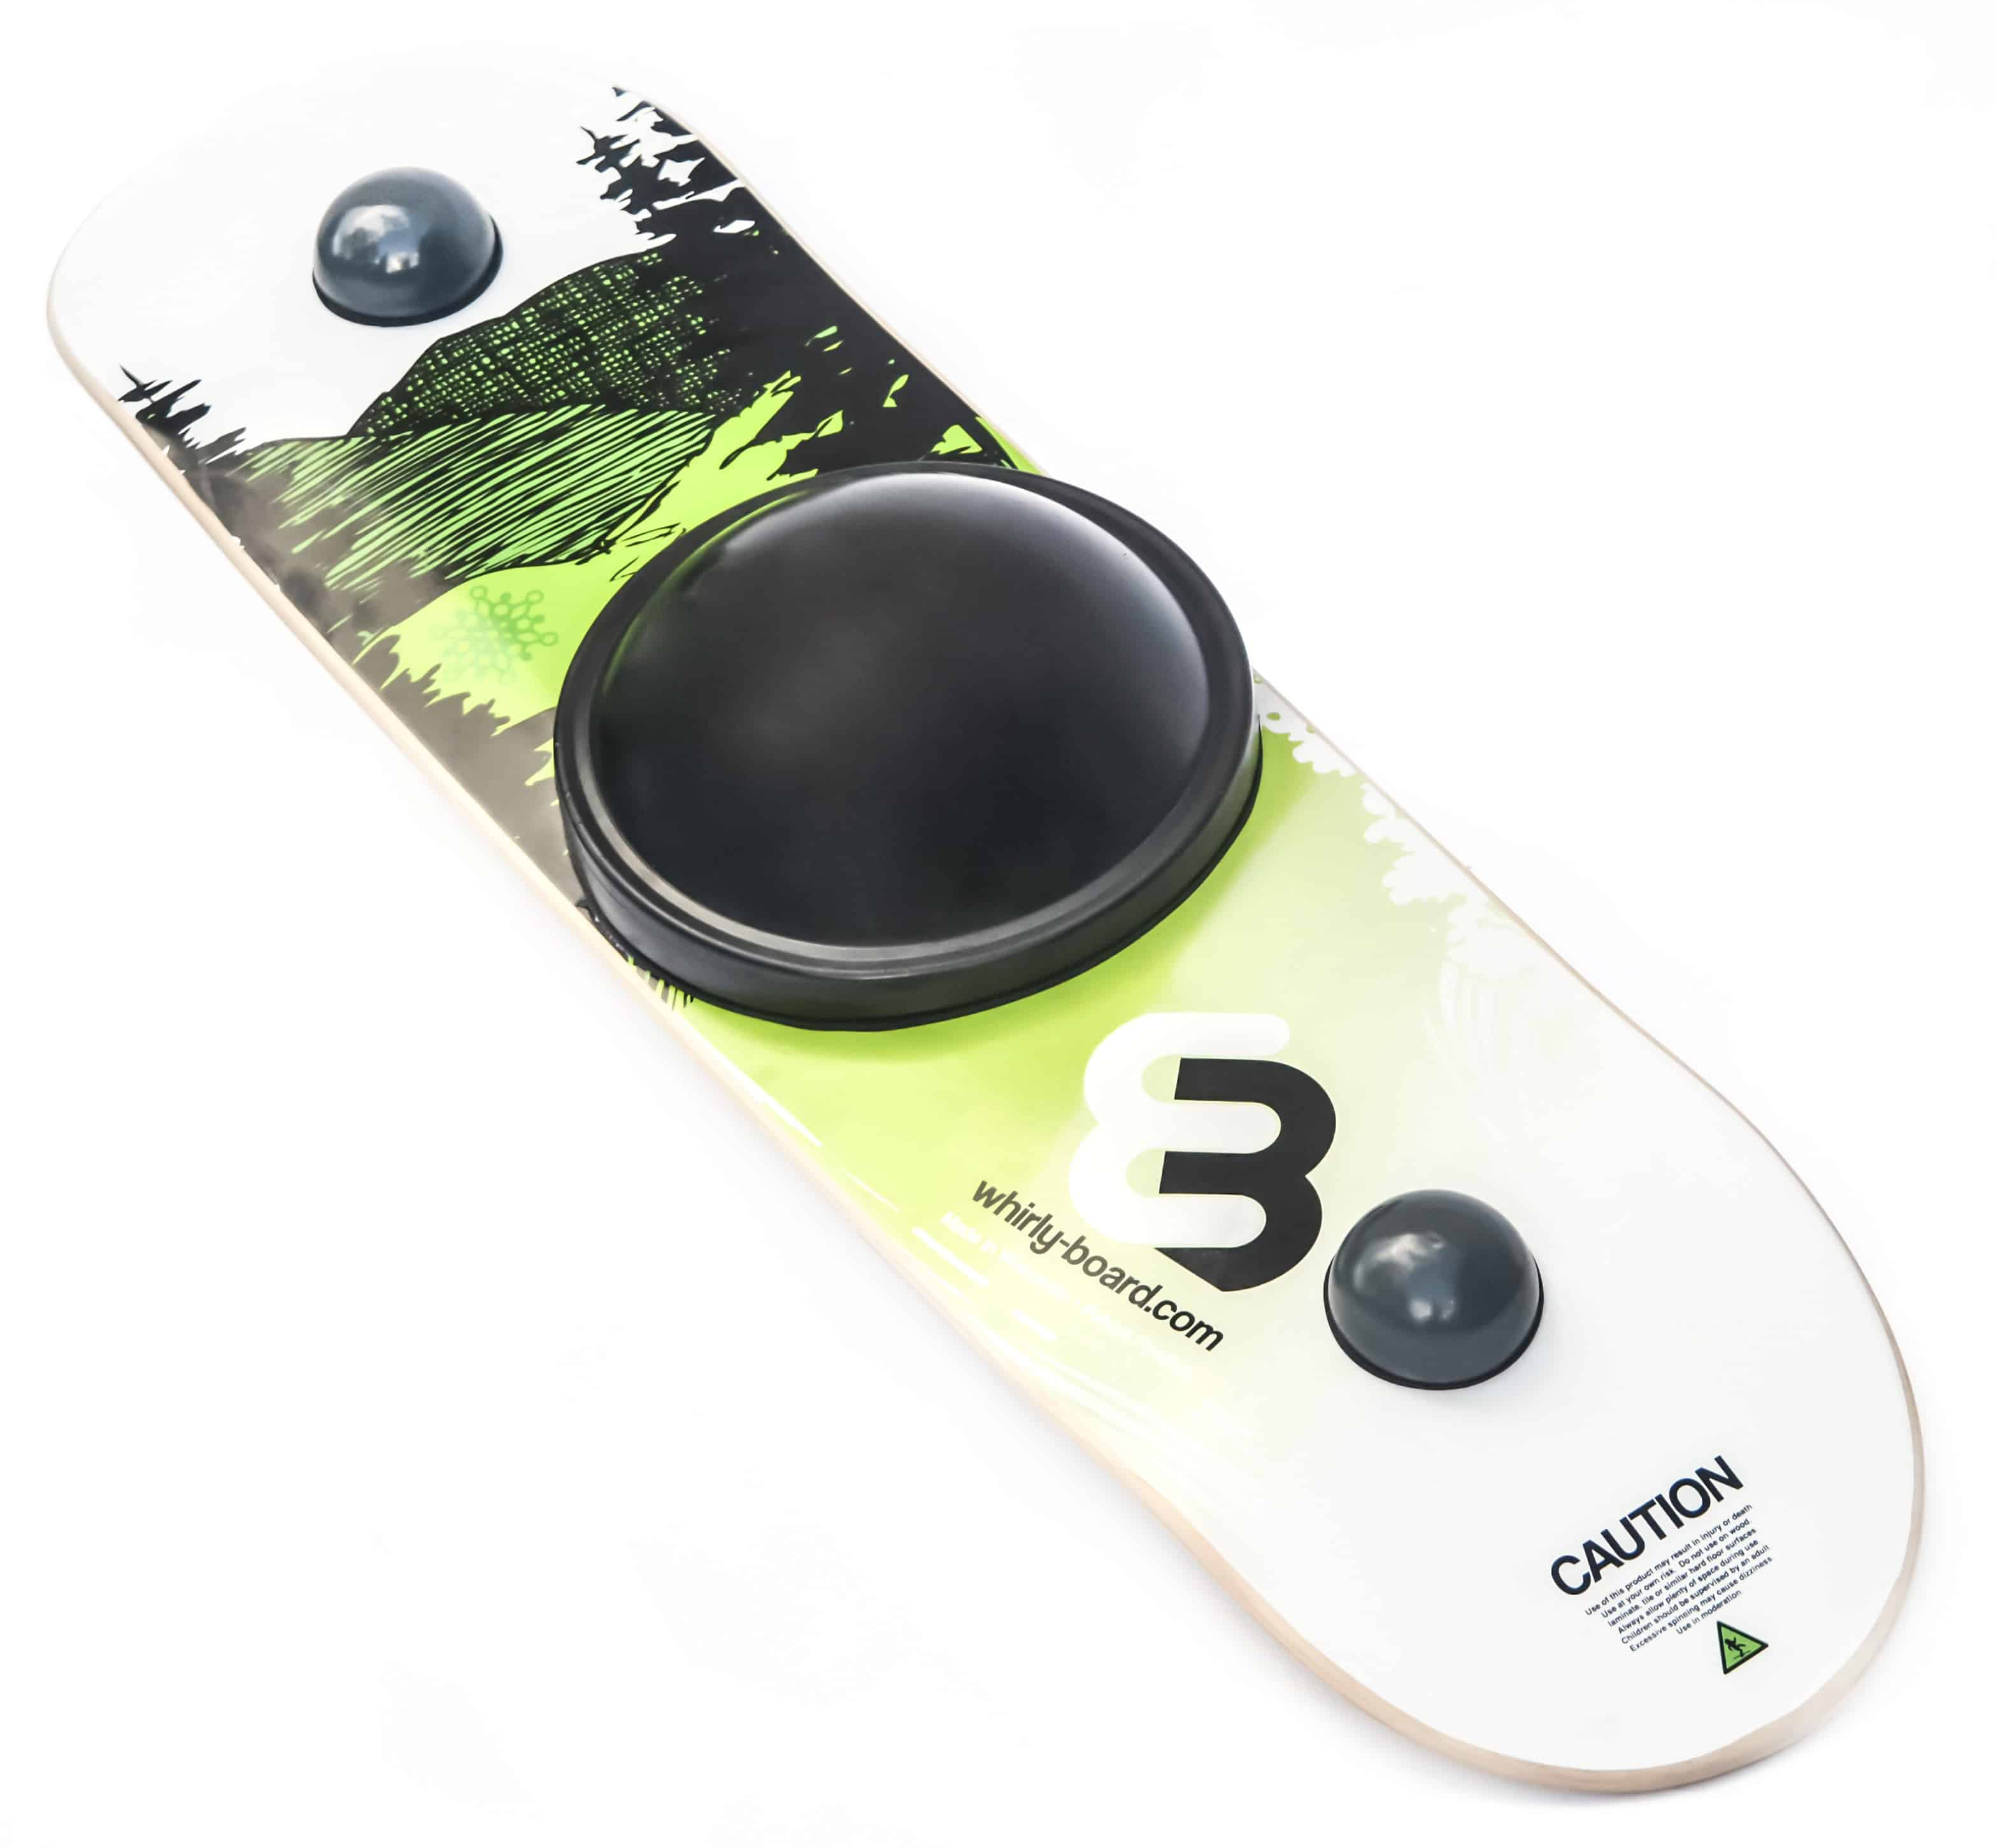 image of whirly board with mountain graphic